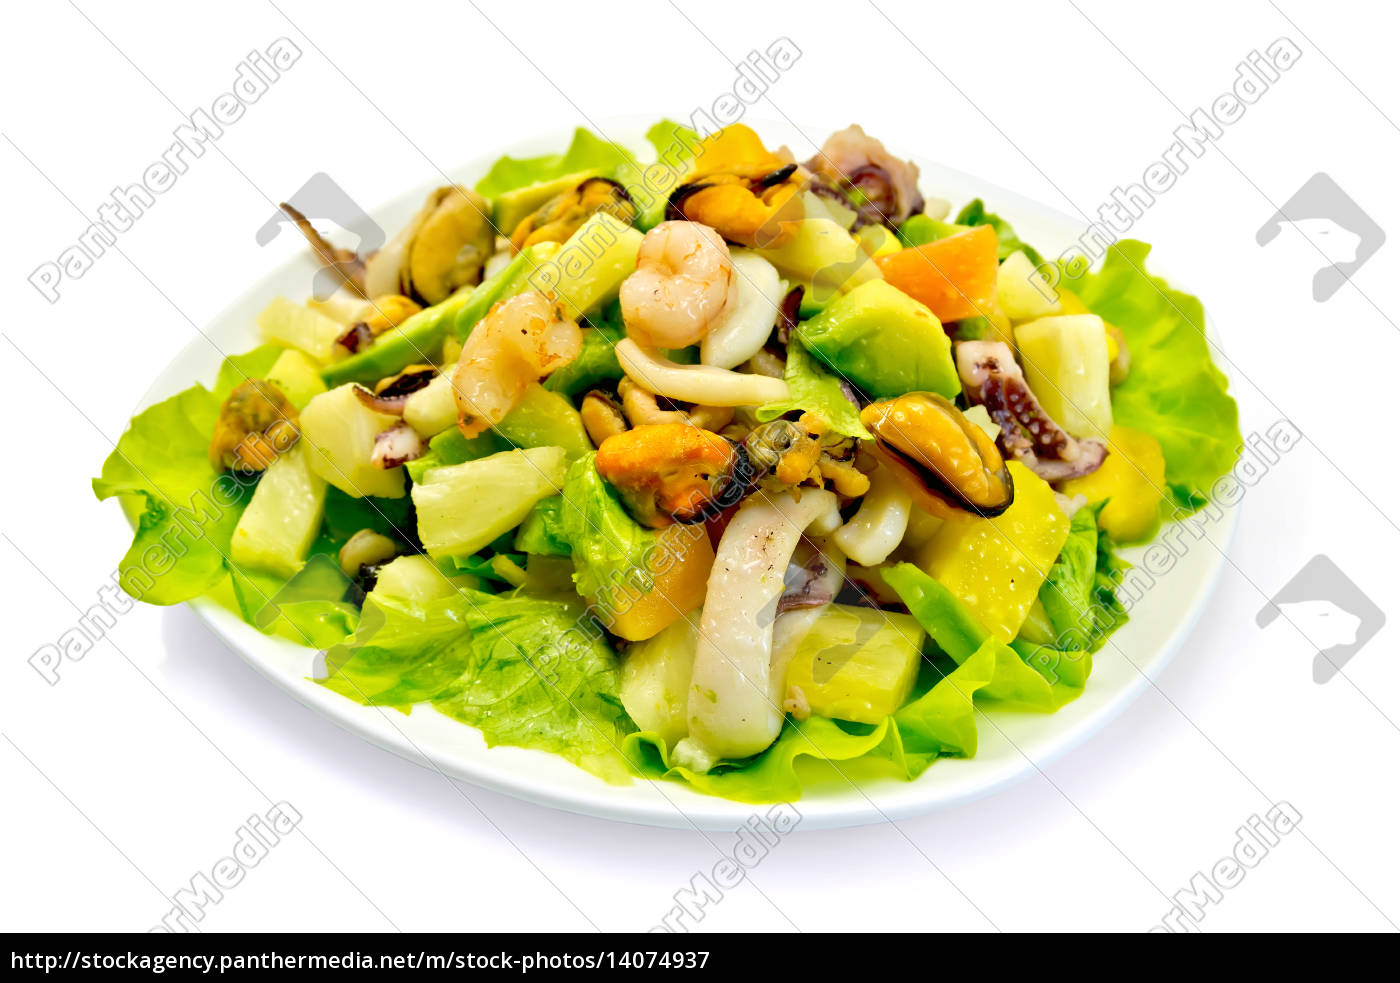 salad, seafood, and, avocado, in, plate - 14074937